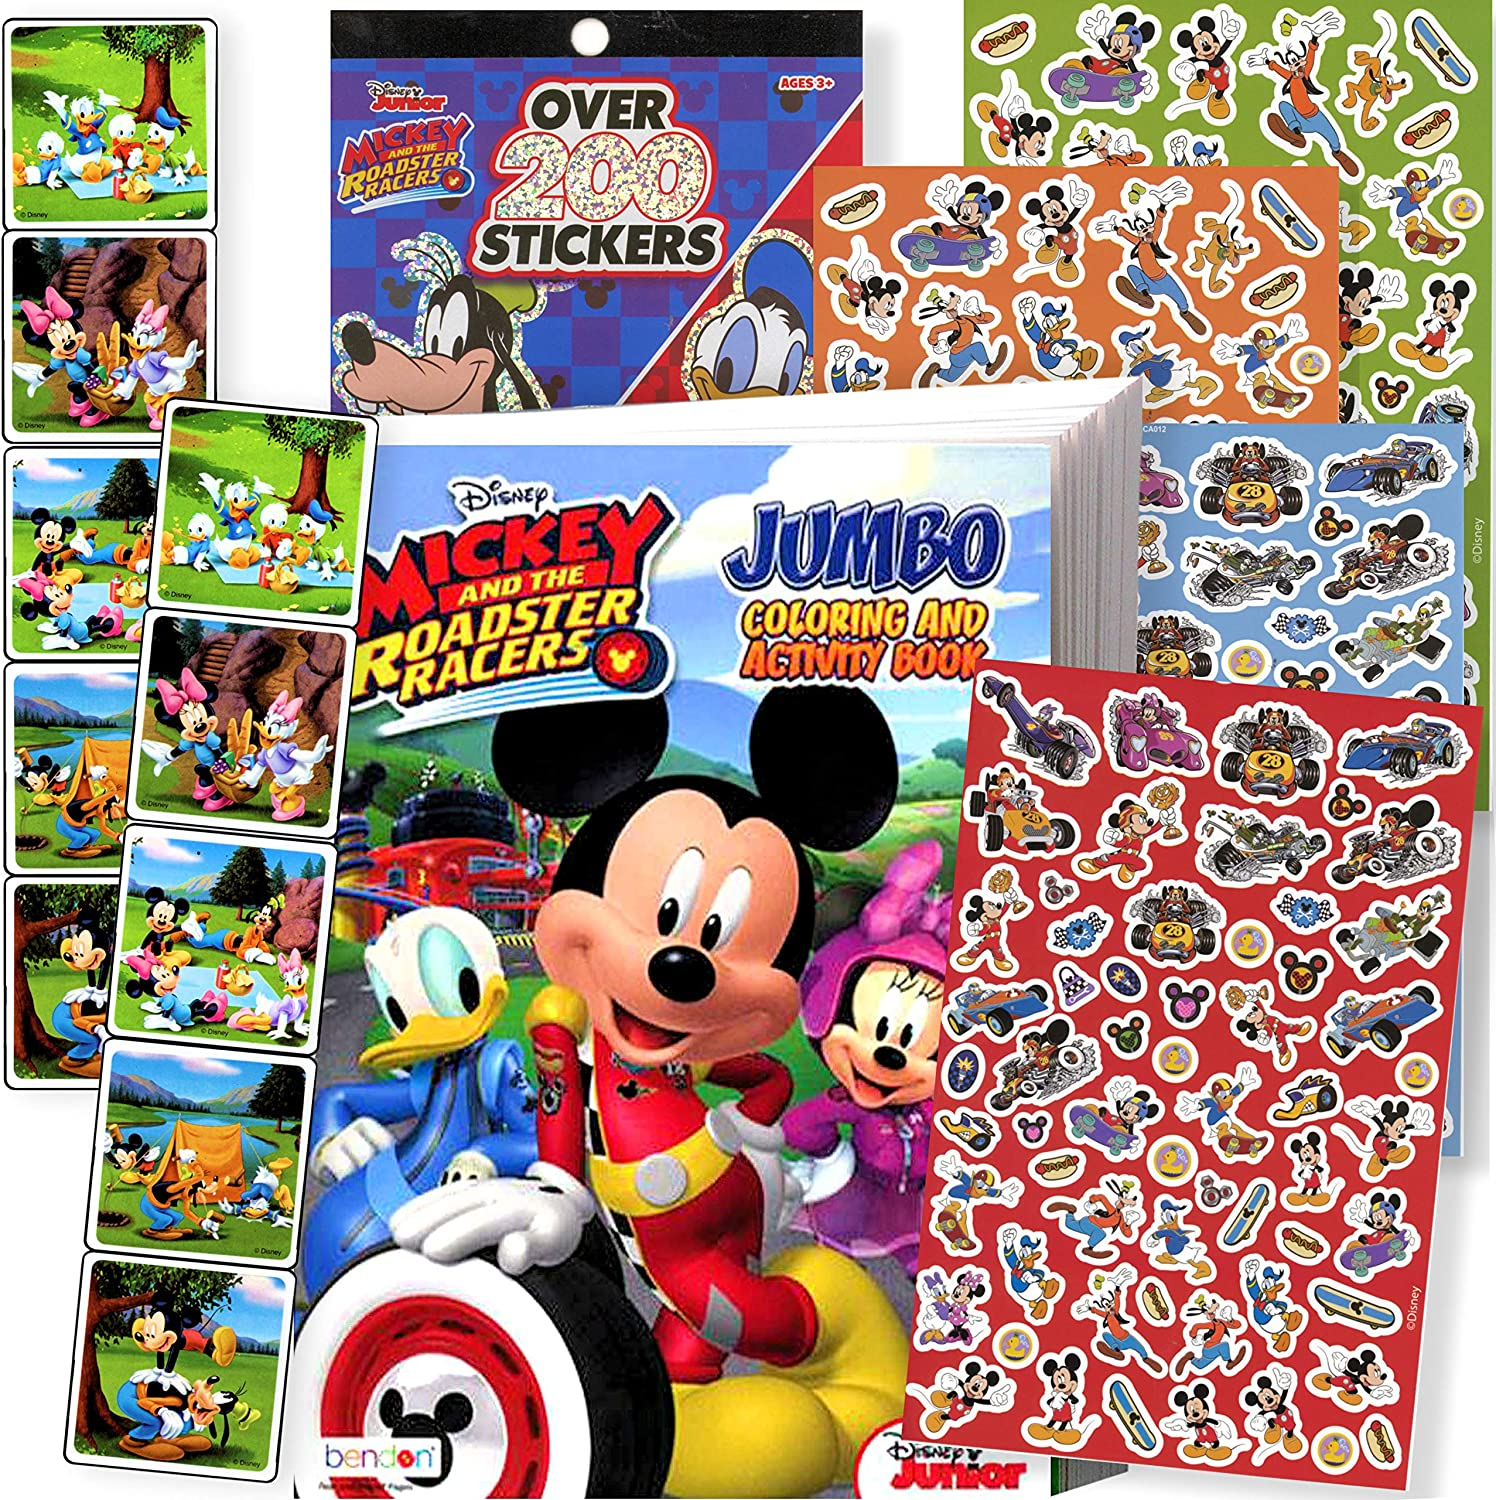 Colouring Book 3D Character Crayons Disney MICKEY MOUSE Colouring Set